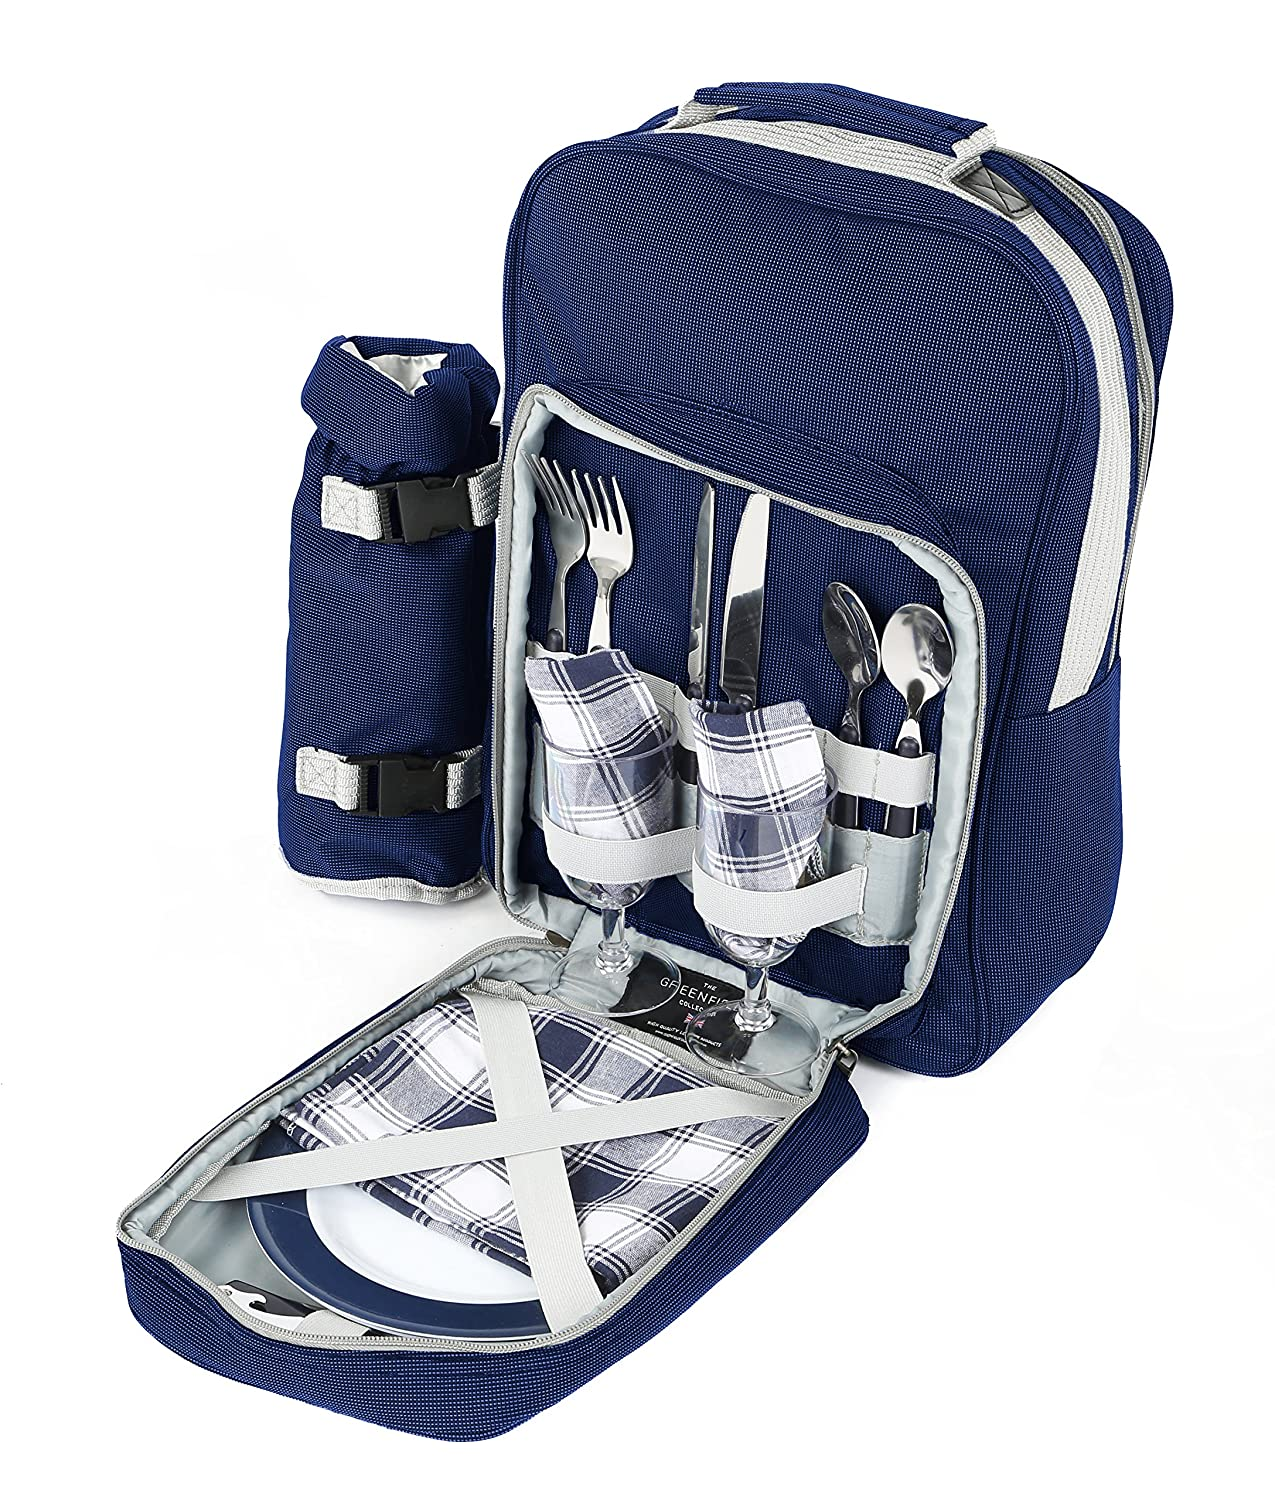 Greenfield Collection Luxury Navy Blue Picnic Backpack Hamper for Two People